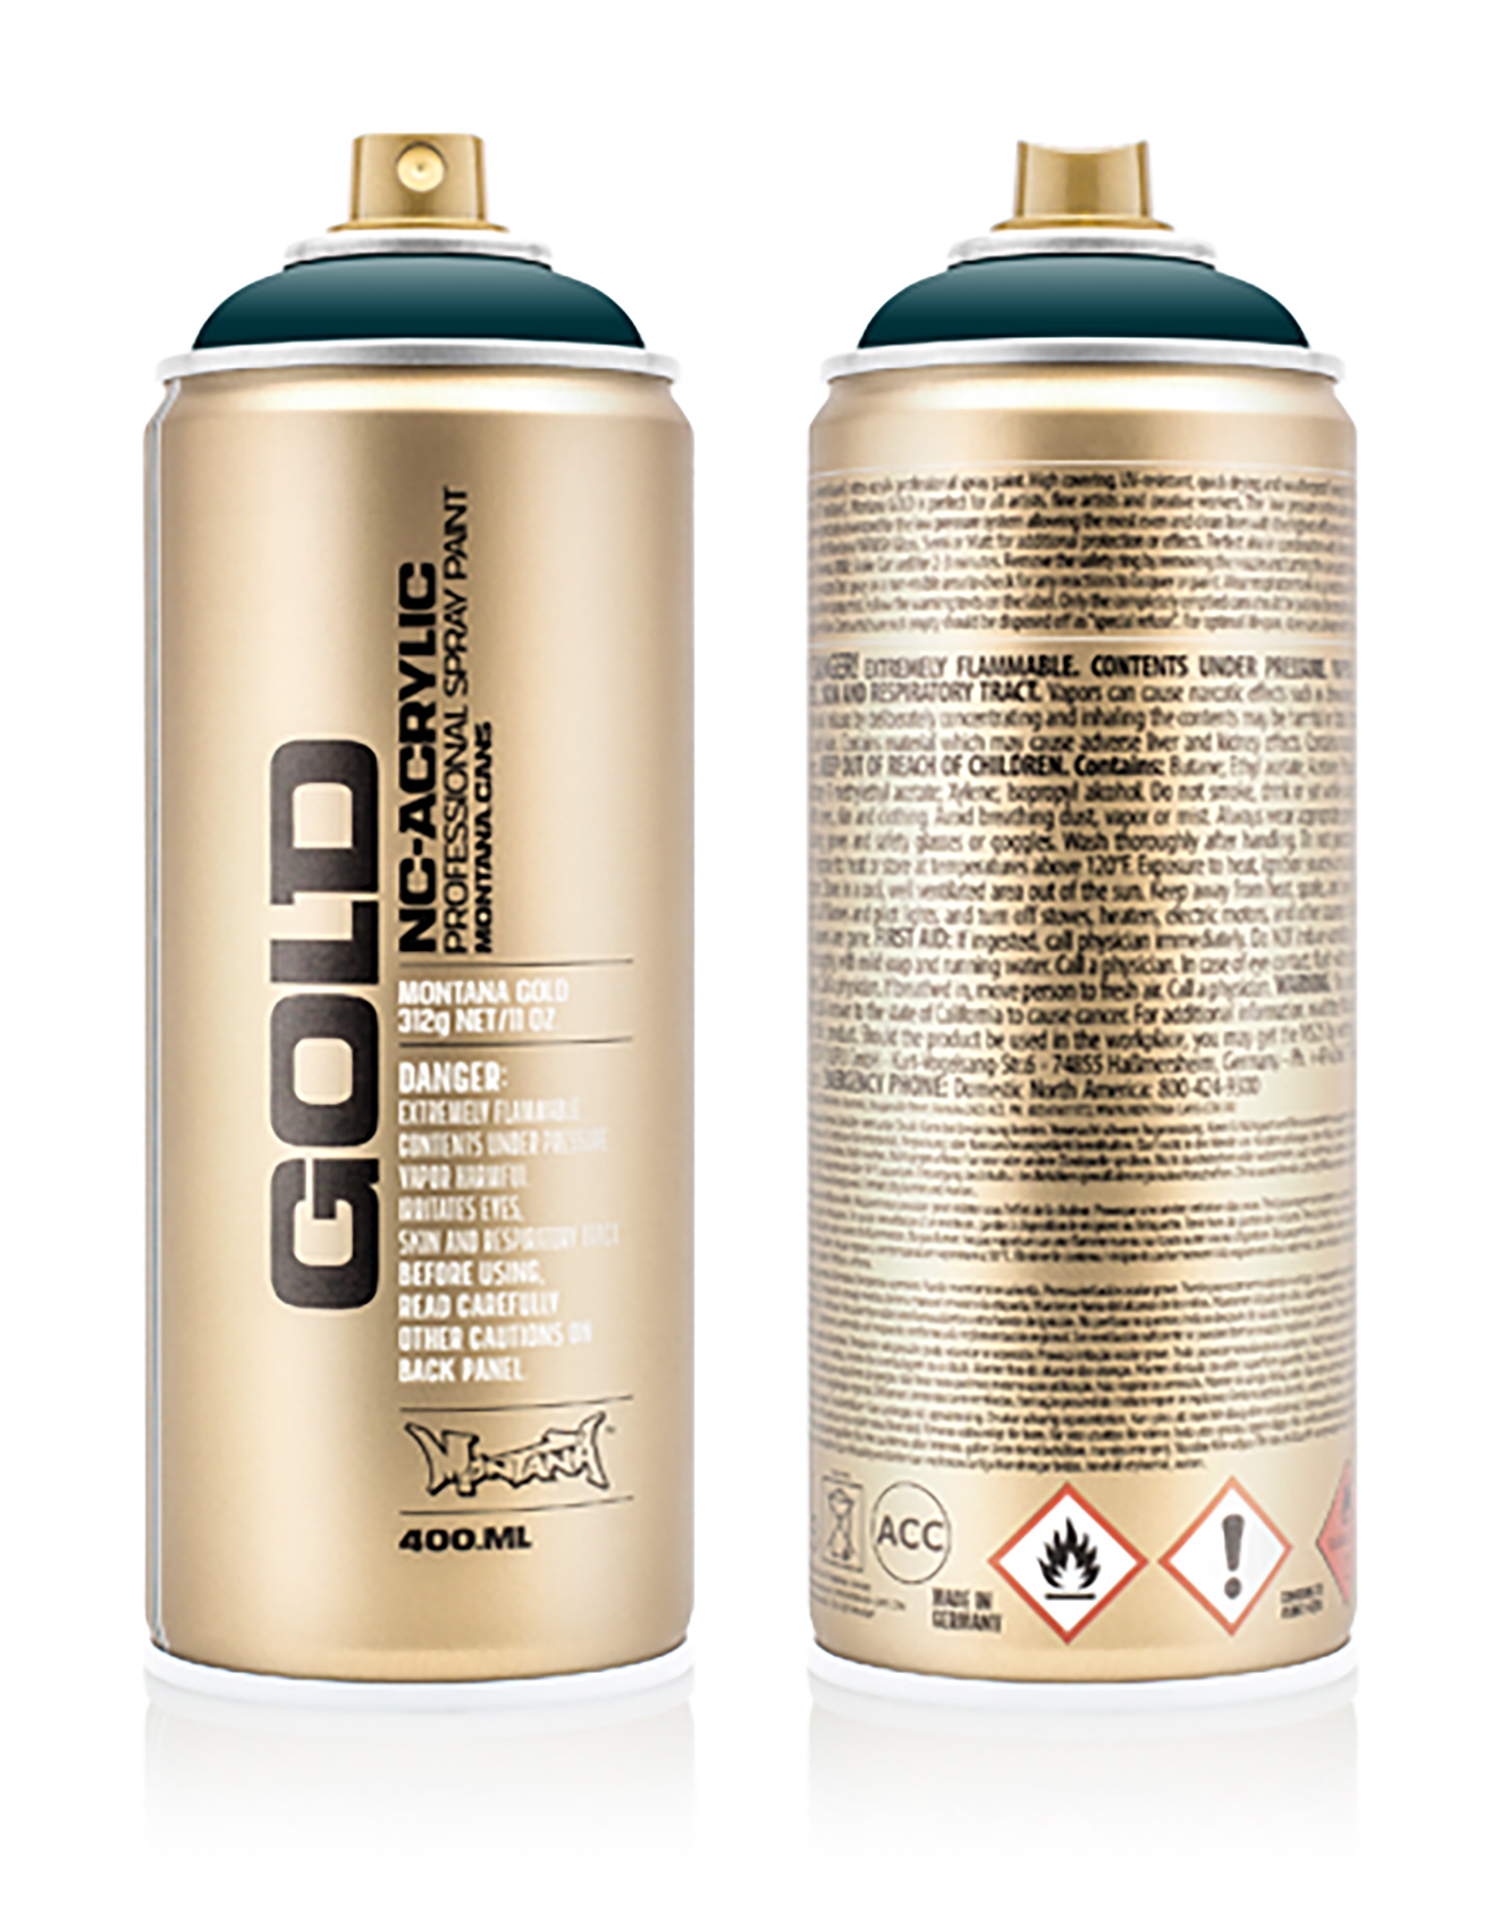 MONTANA-GOLD-SPRAY-400ML-G-6280